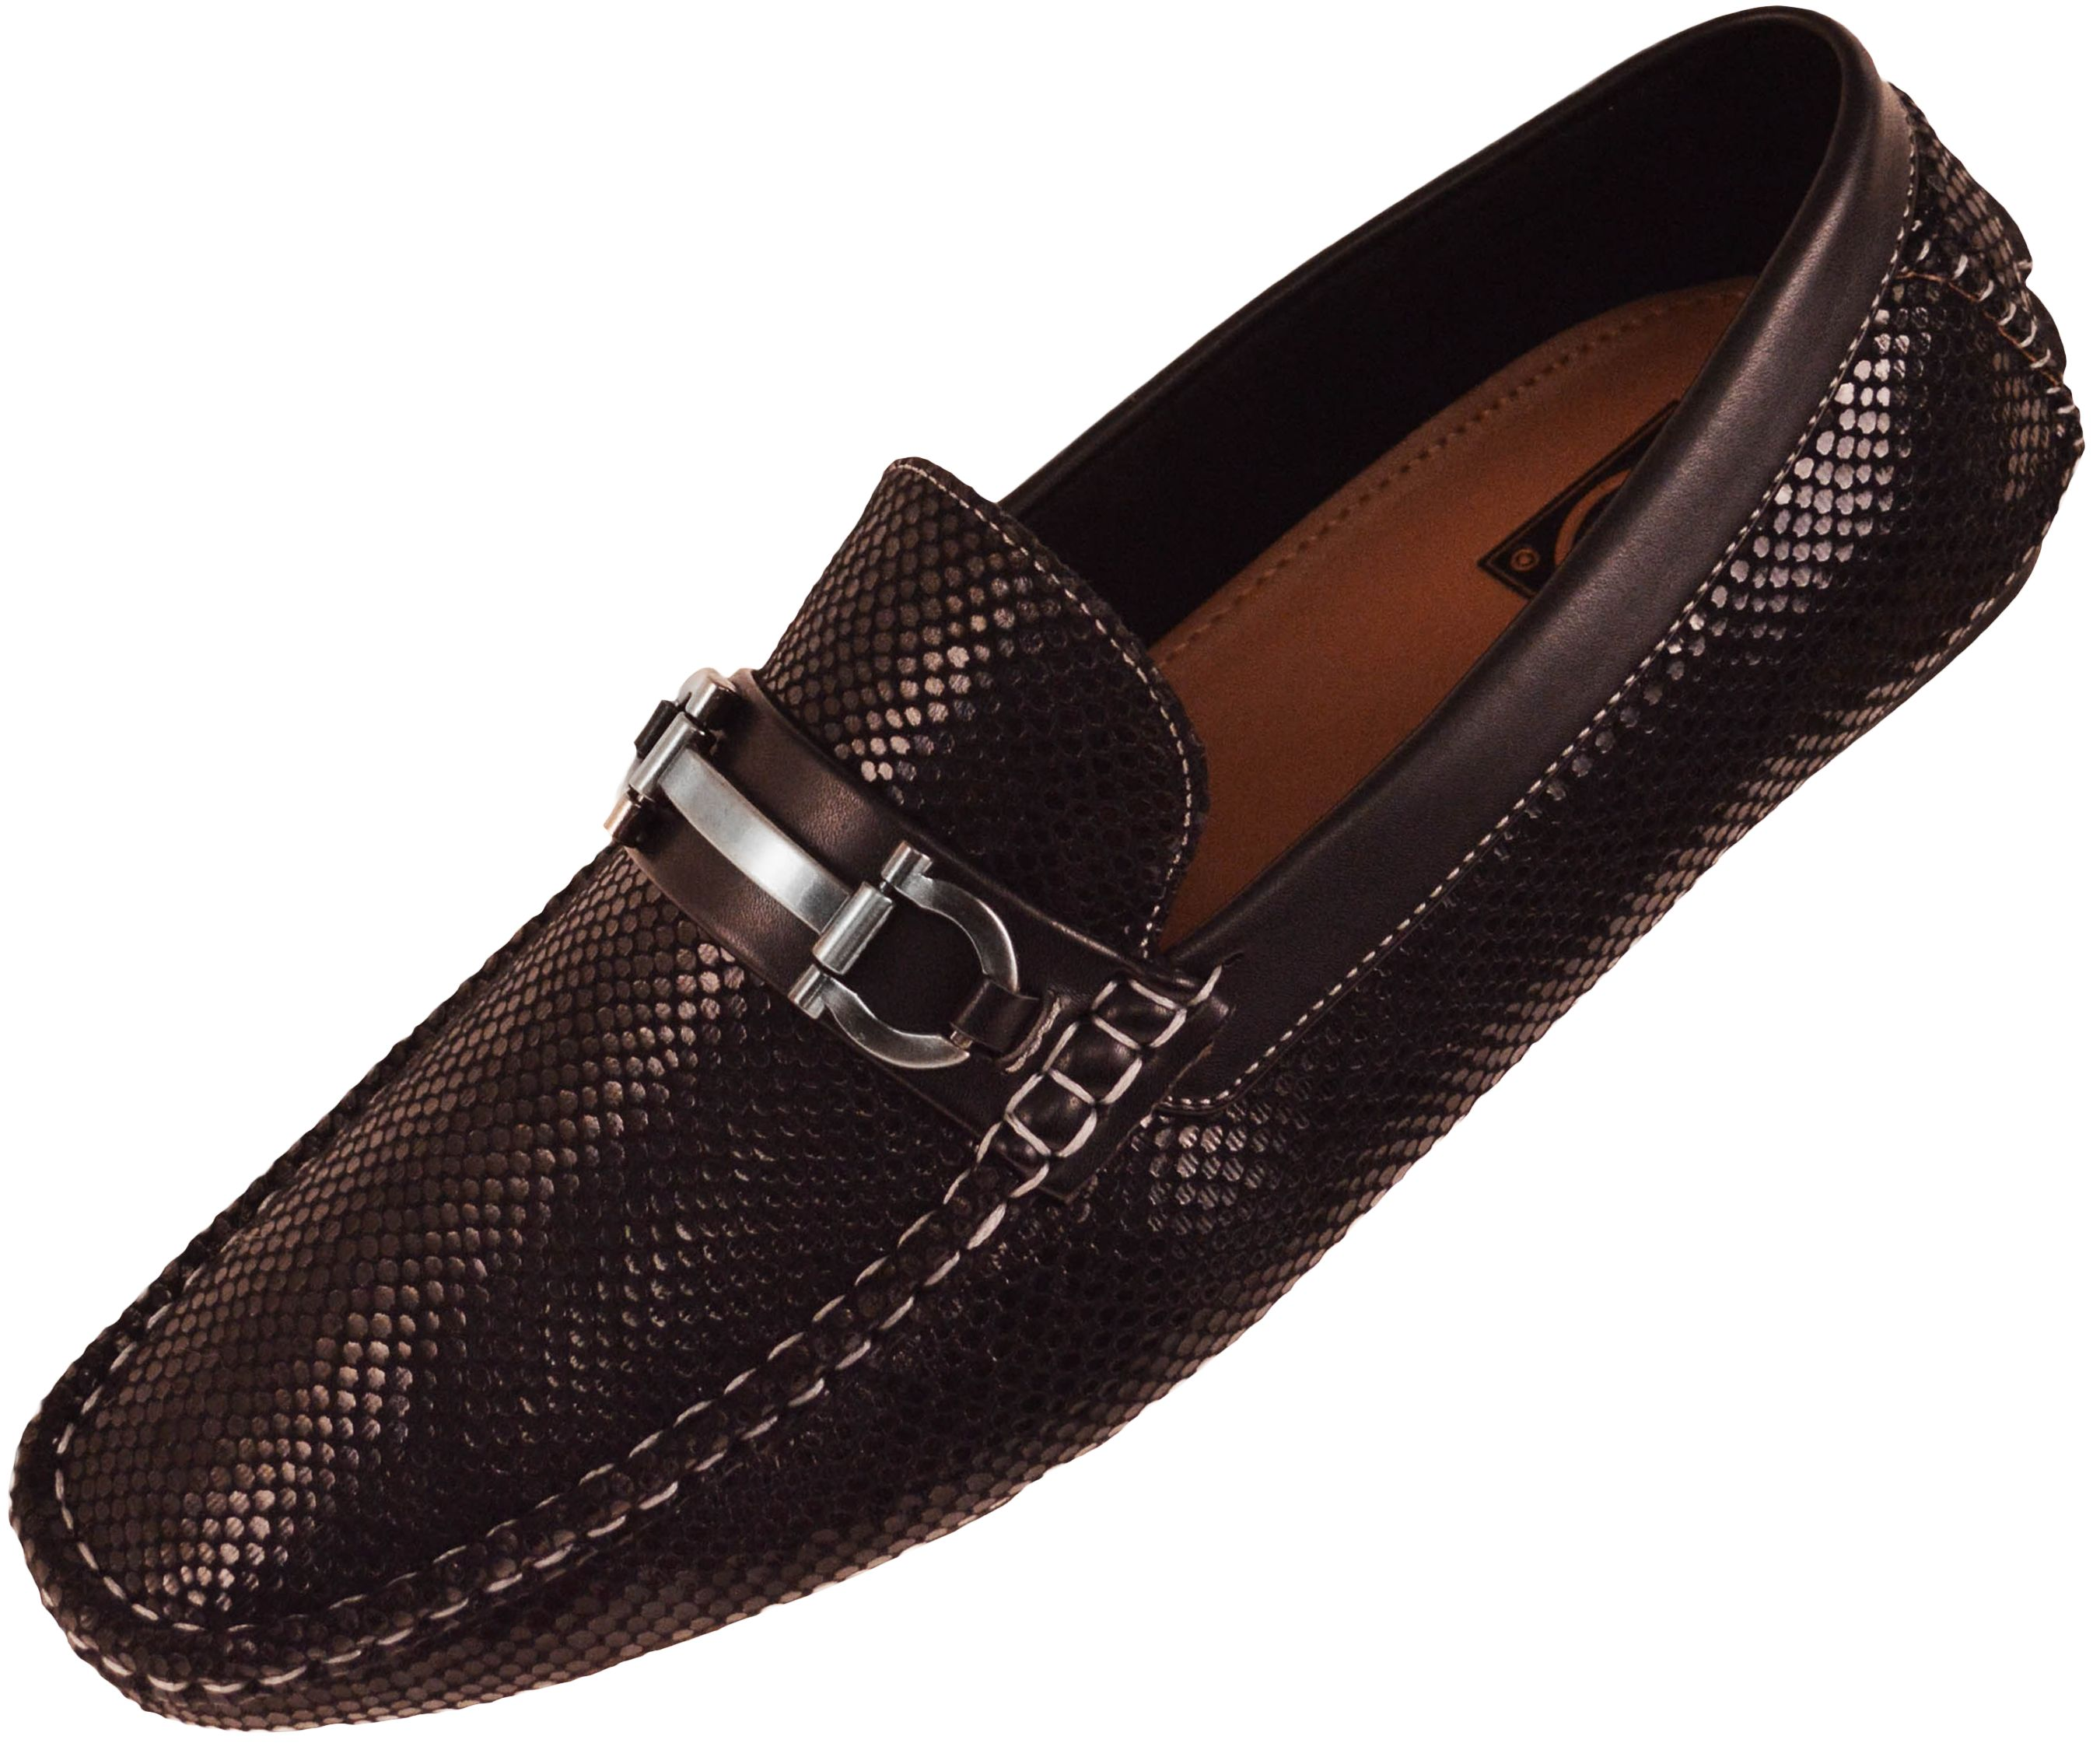 7f08fb002c1 Amali Mens Driving Moccasin Loafer in Black Snake Skin Print with ...